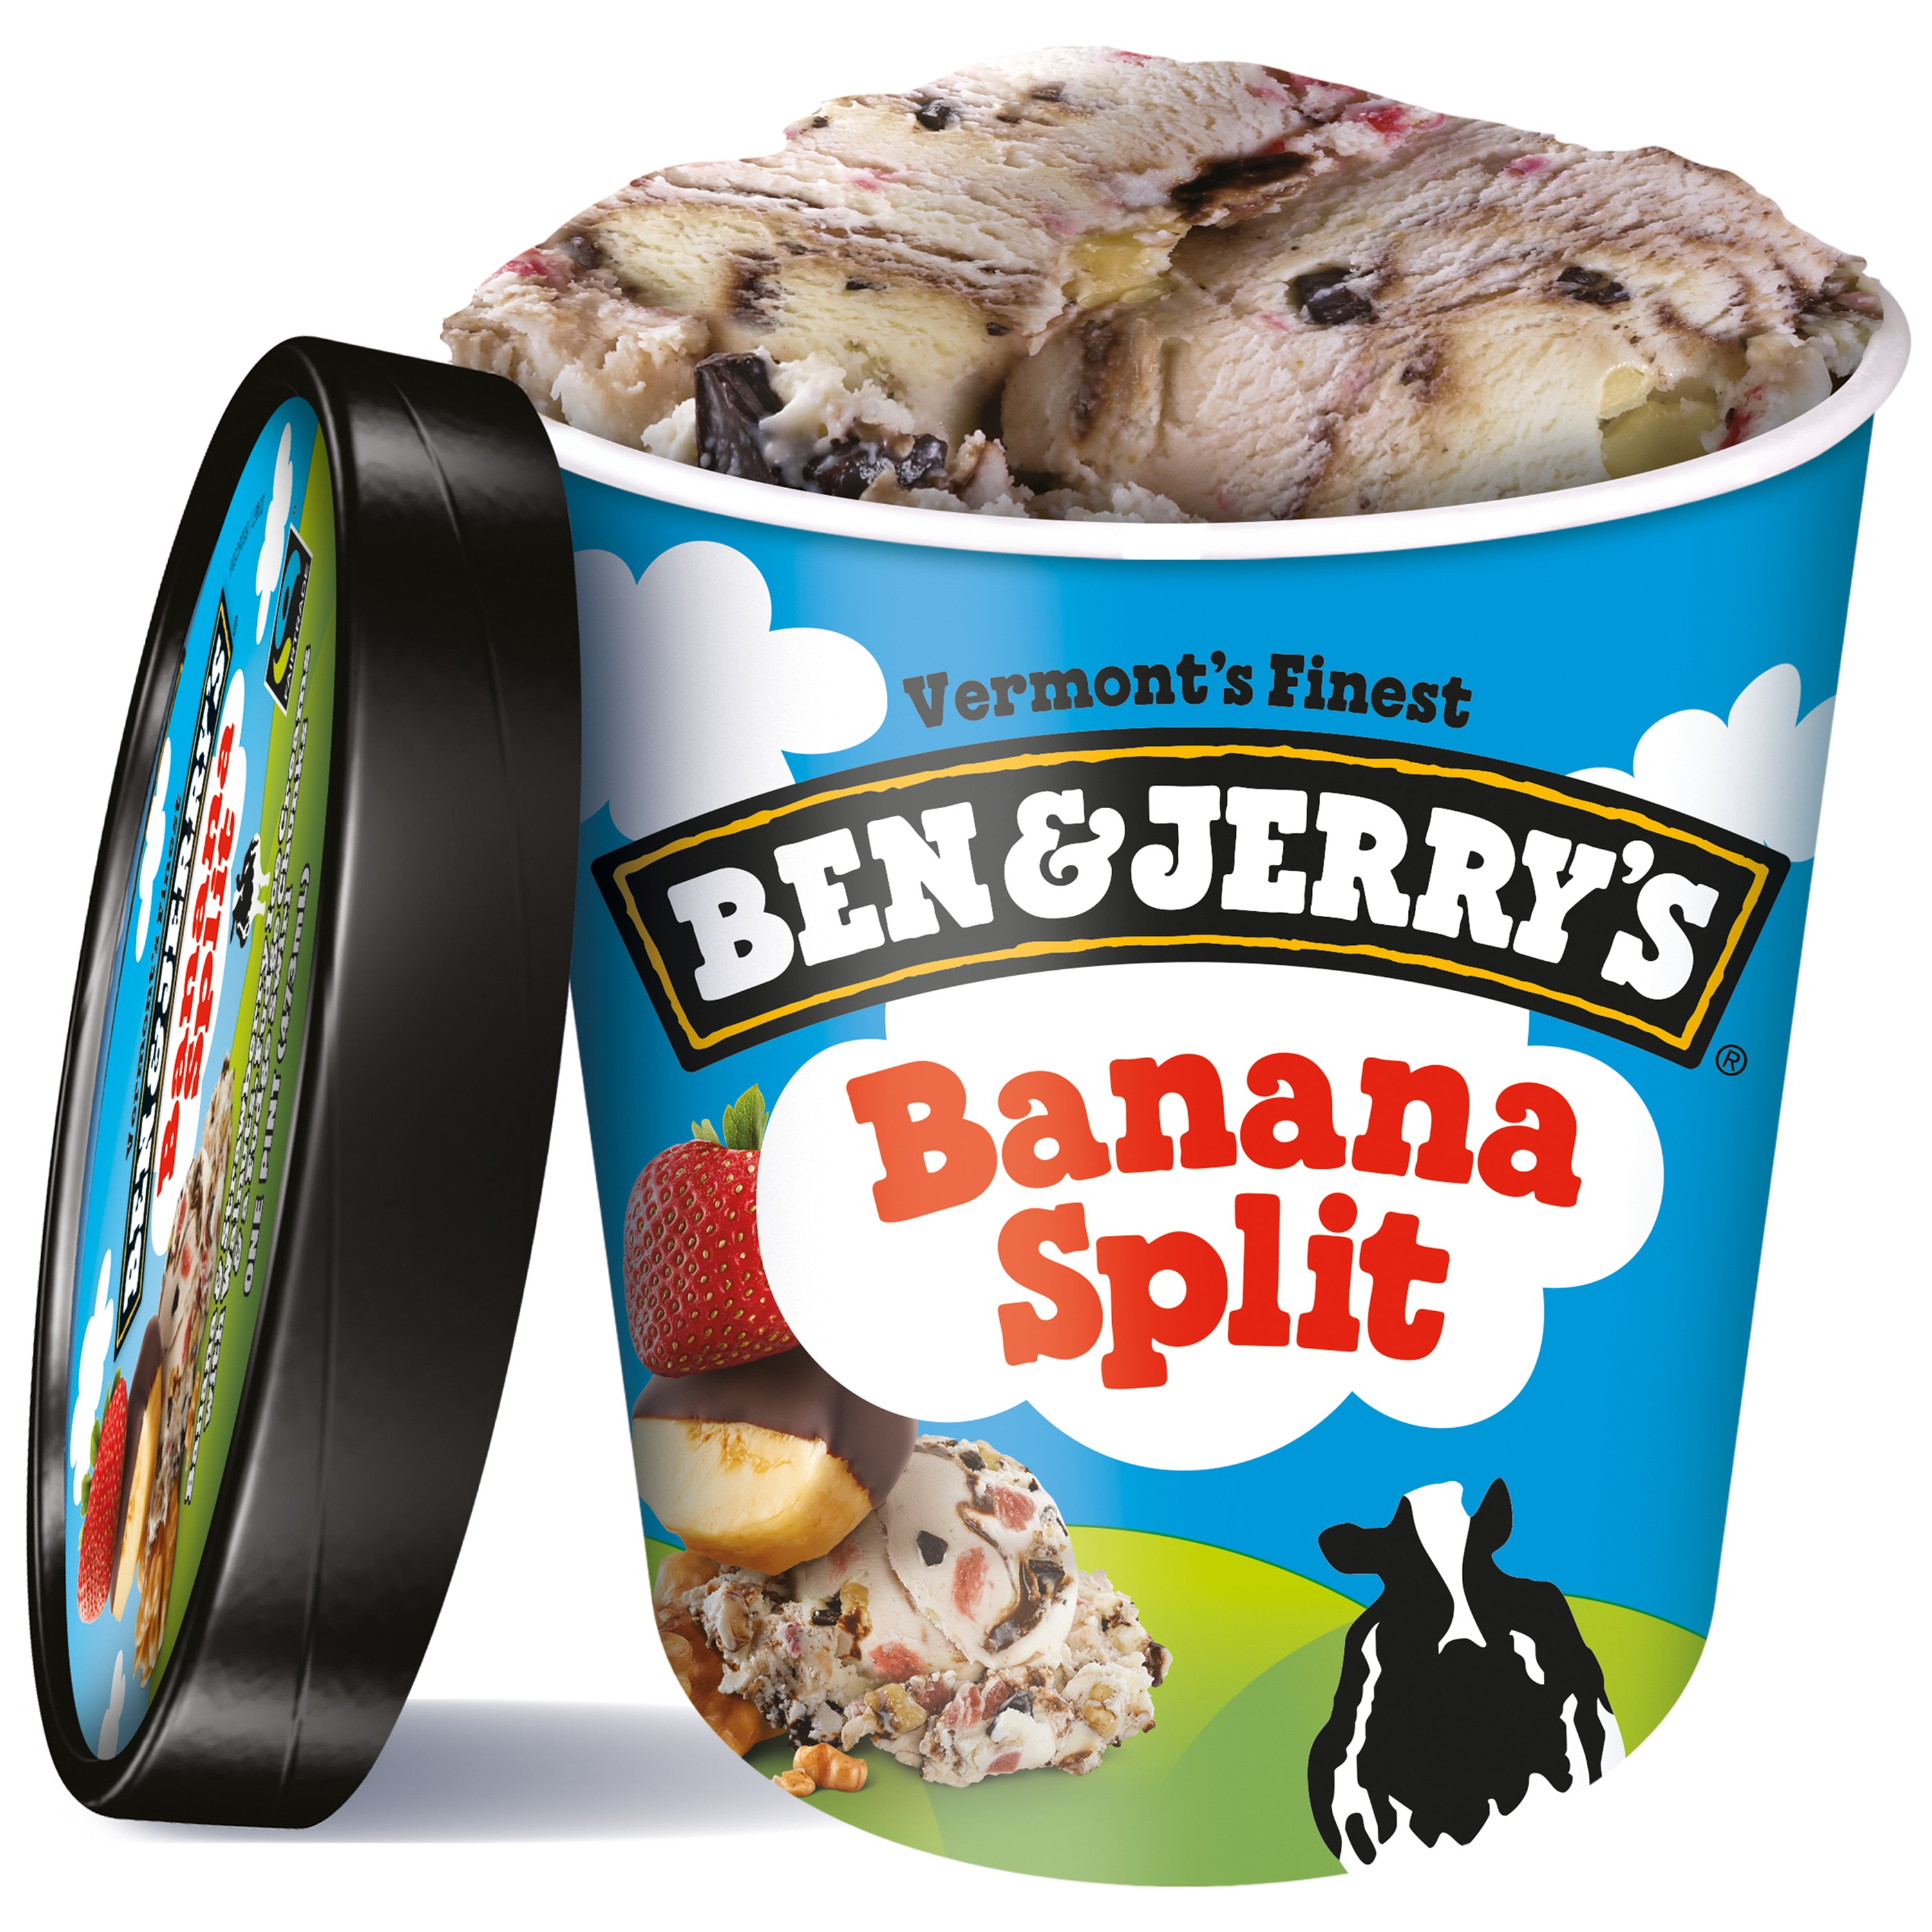 Ben & Jerry's Banana Split Ice Cream, 16 oz